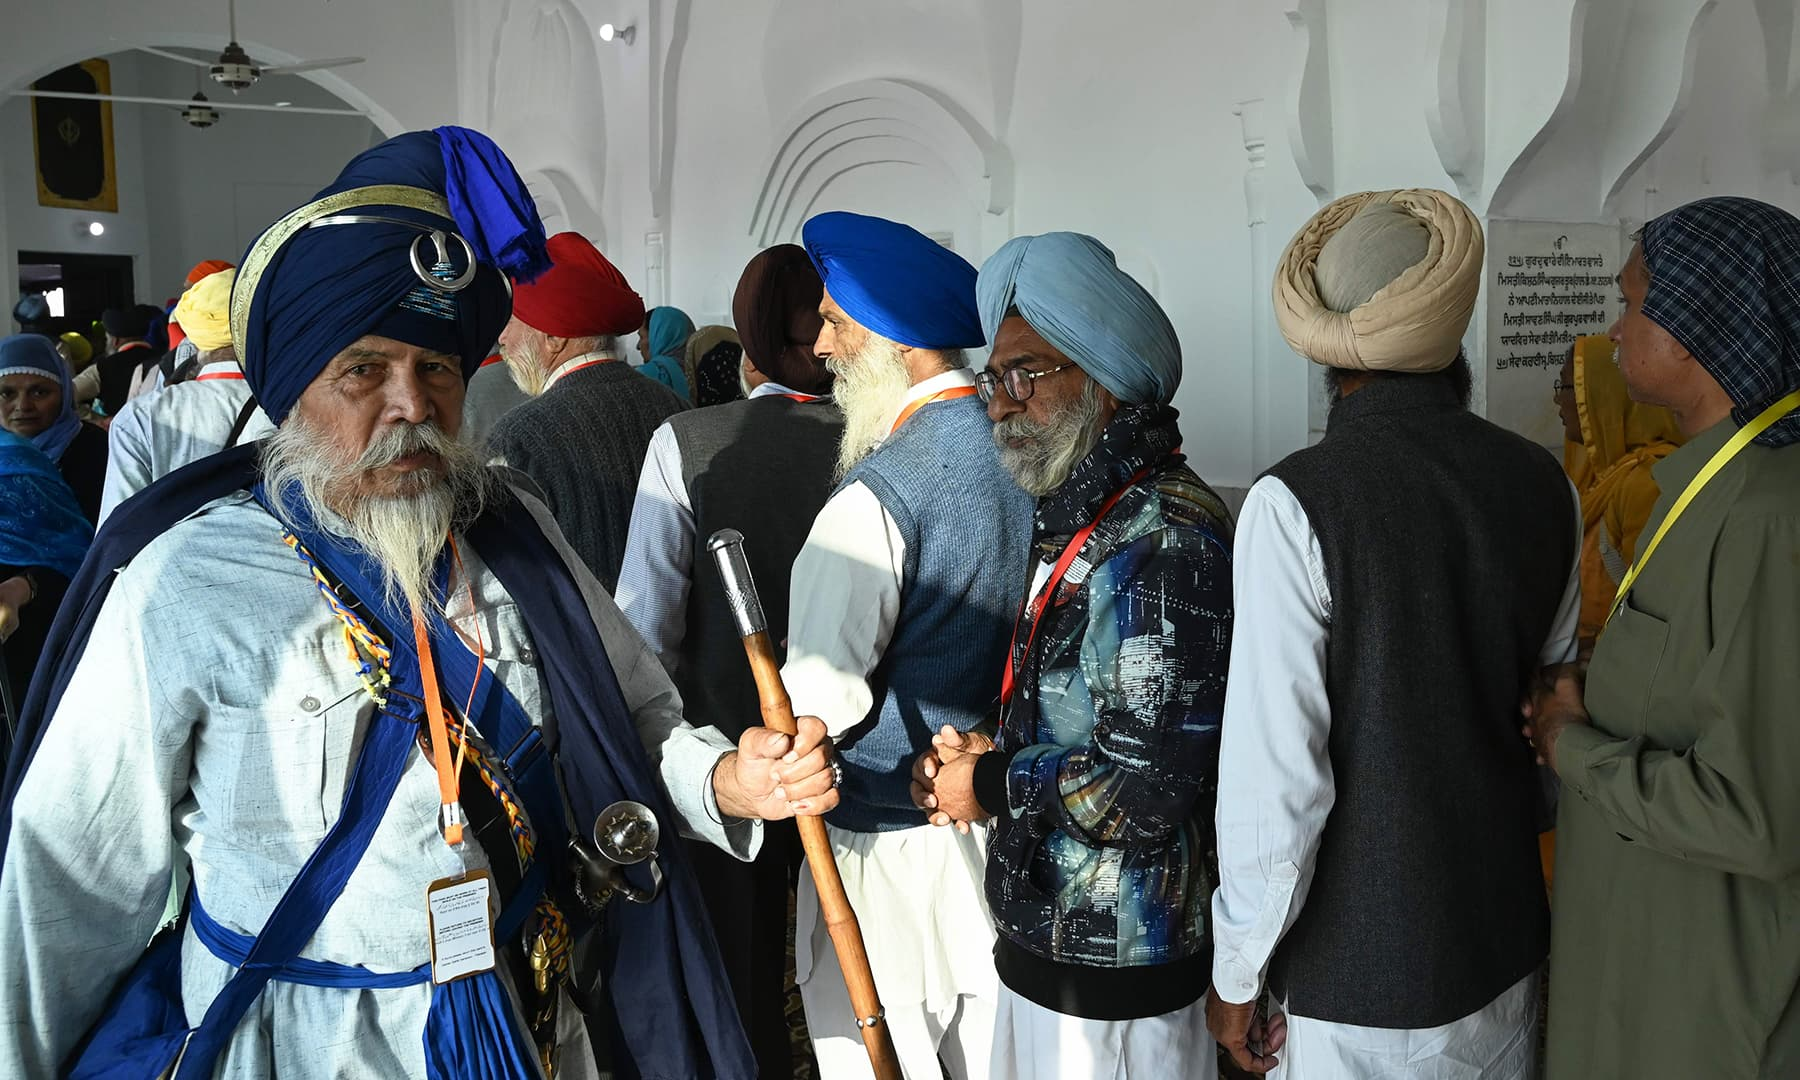 Sikh pilgrims arrive through the corridor to visit the Shrine of Baba Guru Nanak Dev at Gurdwara Darbar Sahib in Kartarpur on Saturday. — AFP